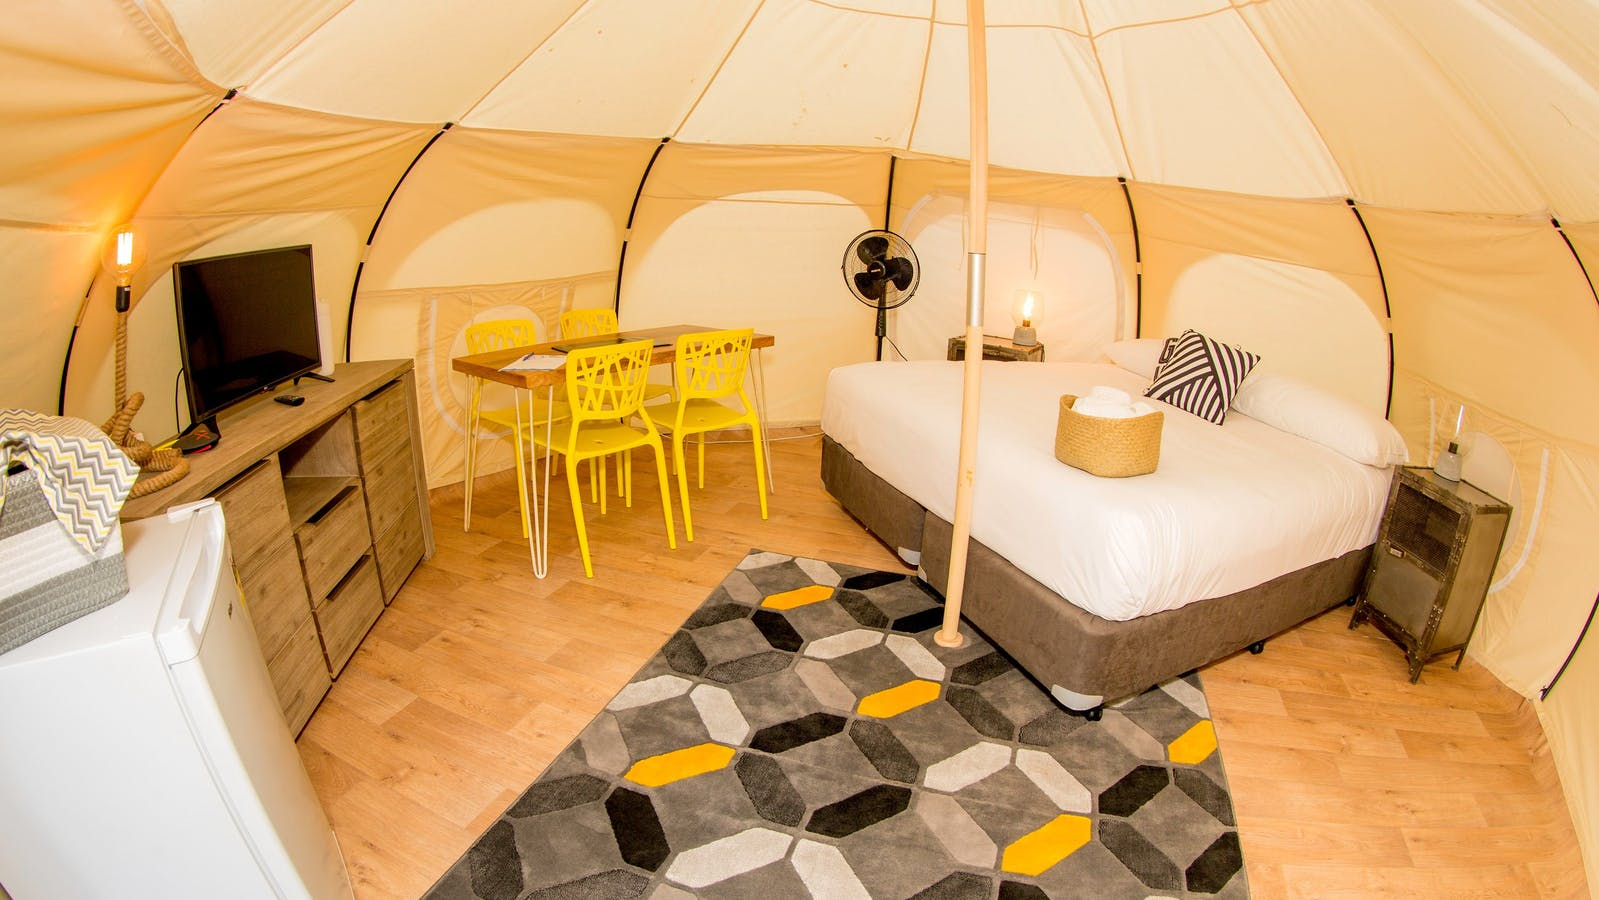 Industrial Family Belle Tent